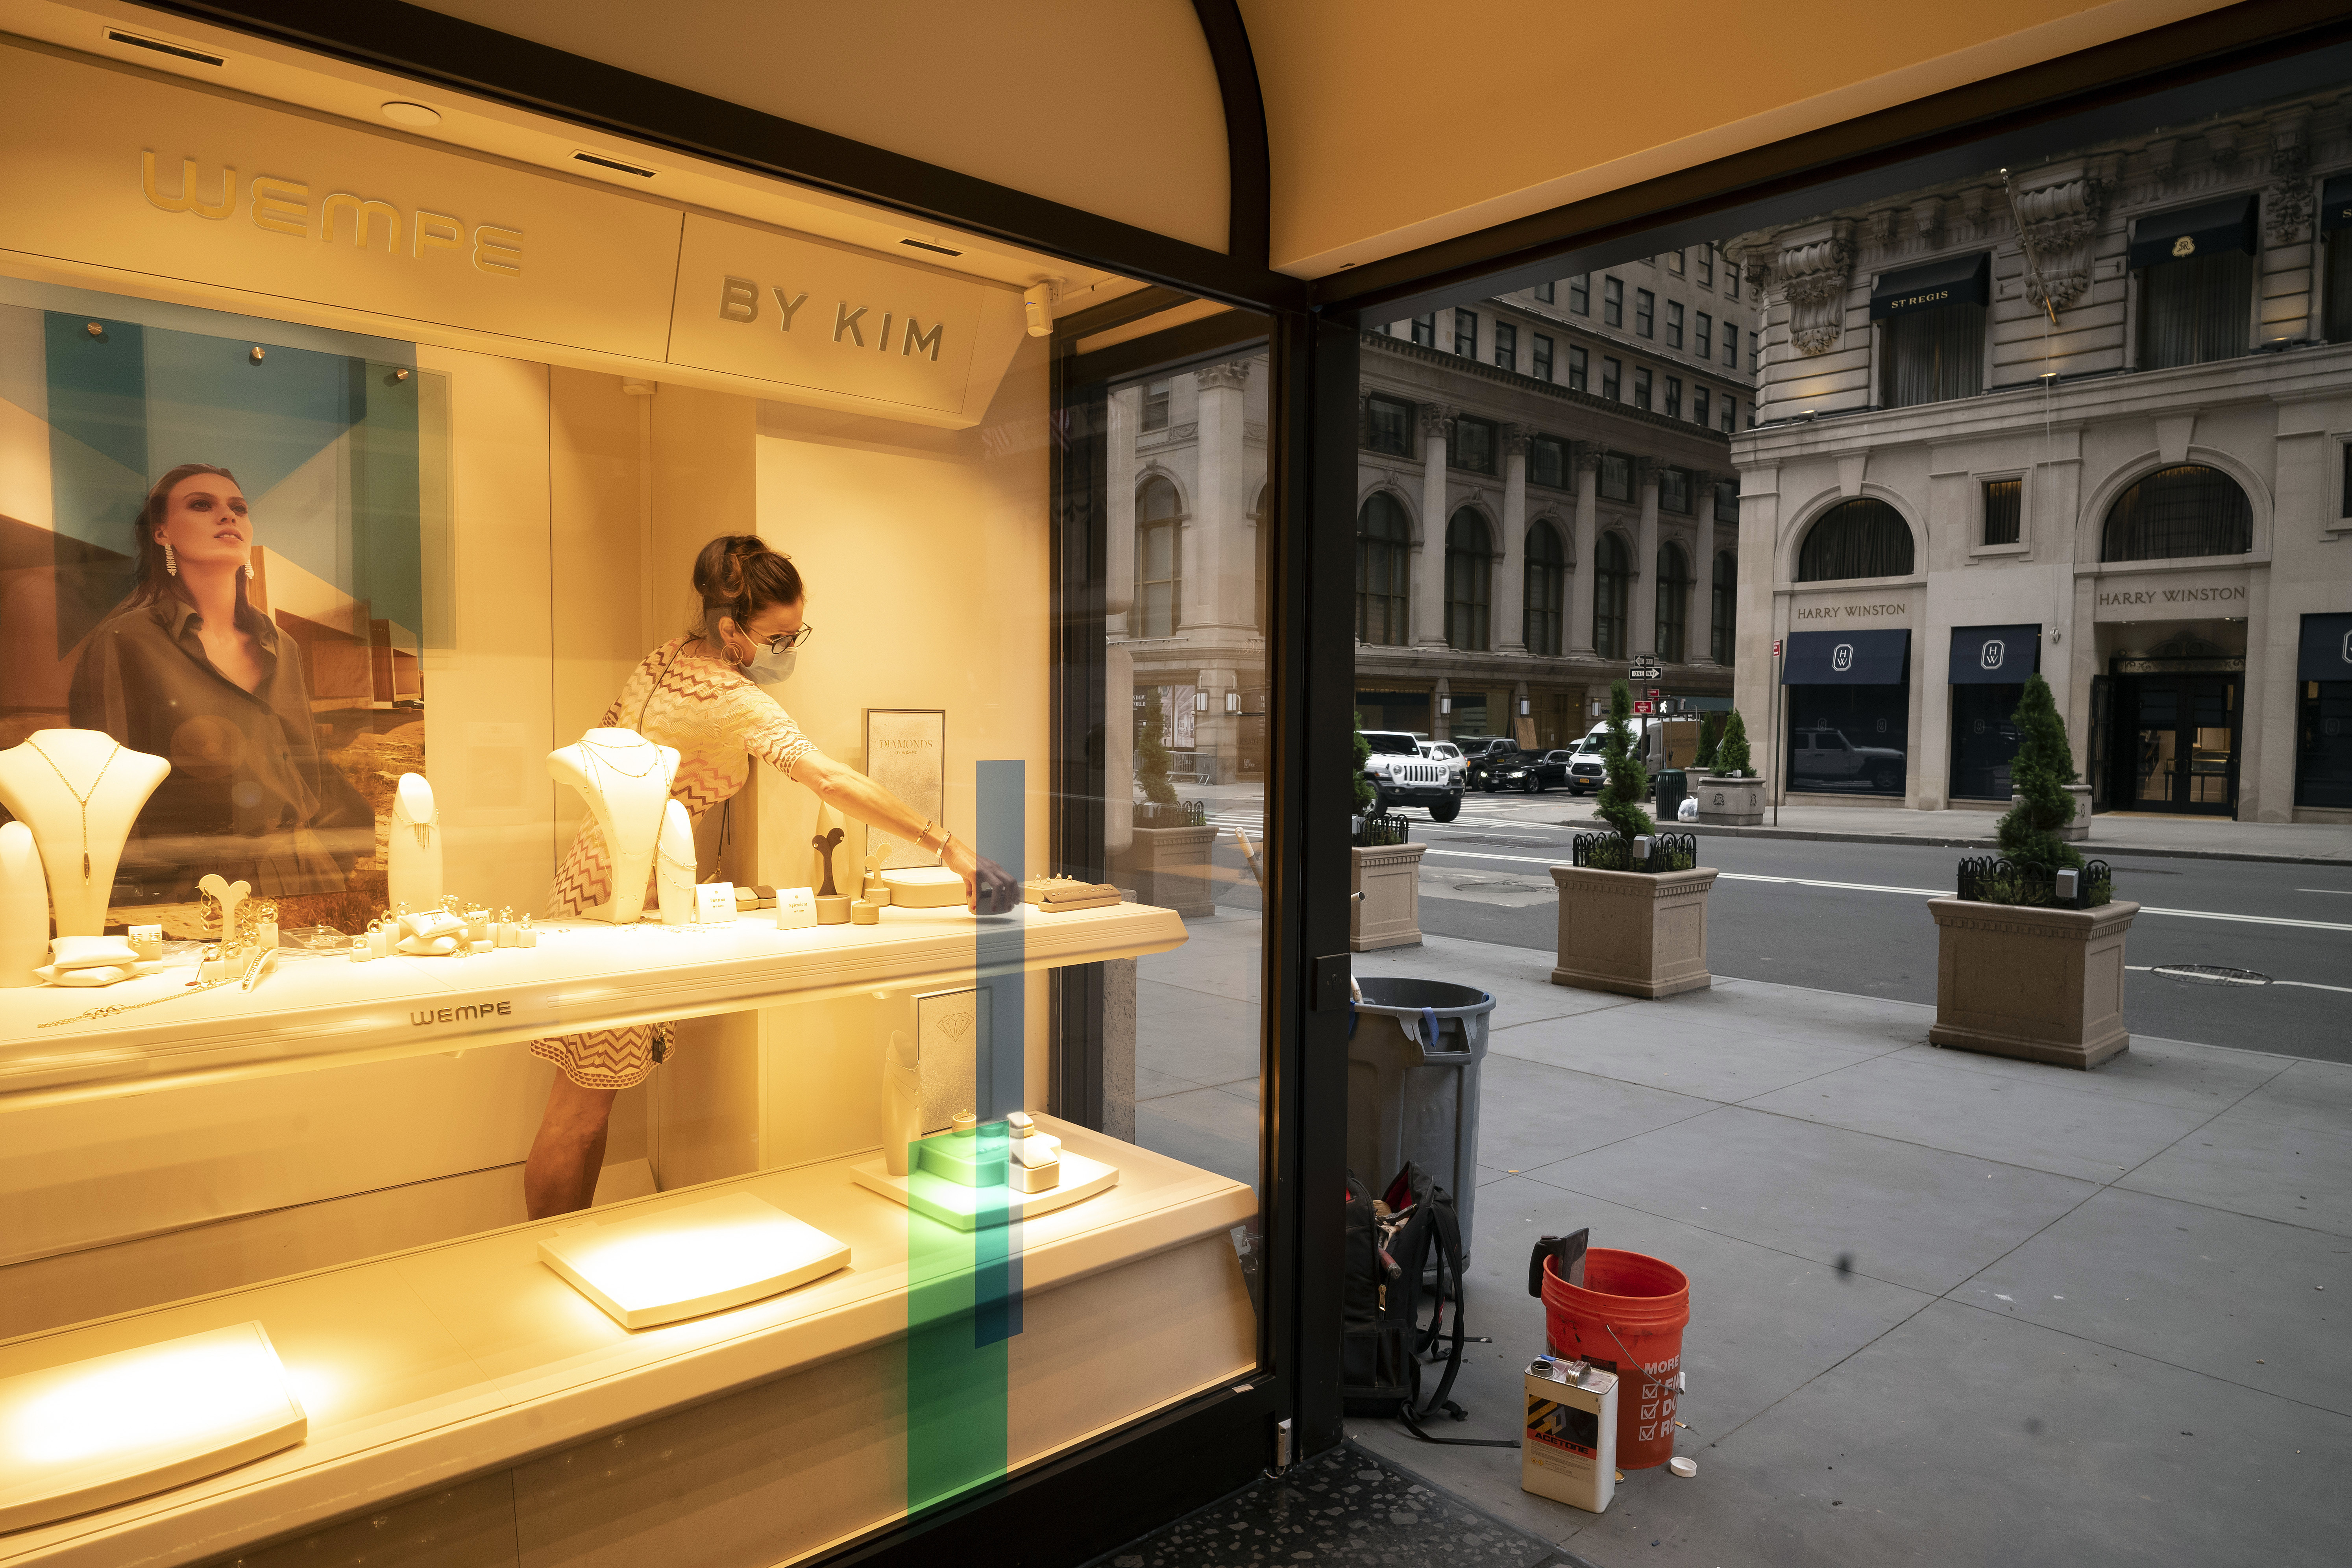 A Wempe store employee places jewellery in a store window on Thursday, in New York's Fifth Avenue shopping district